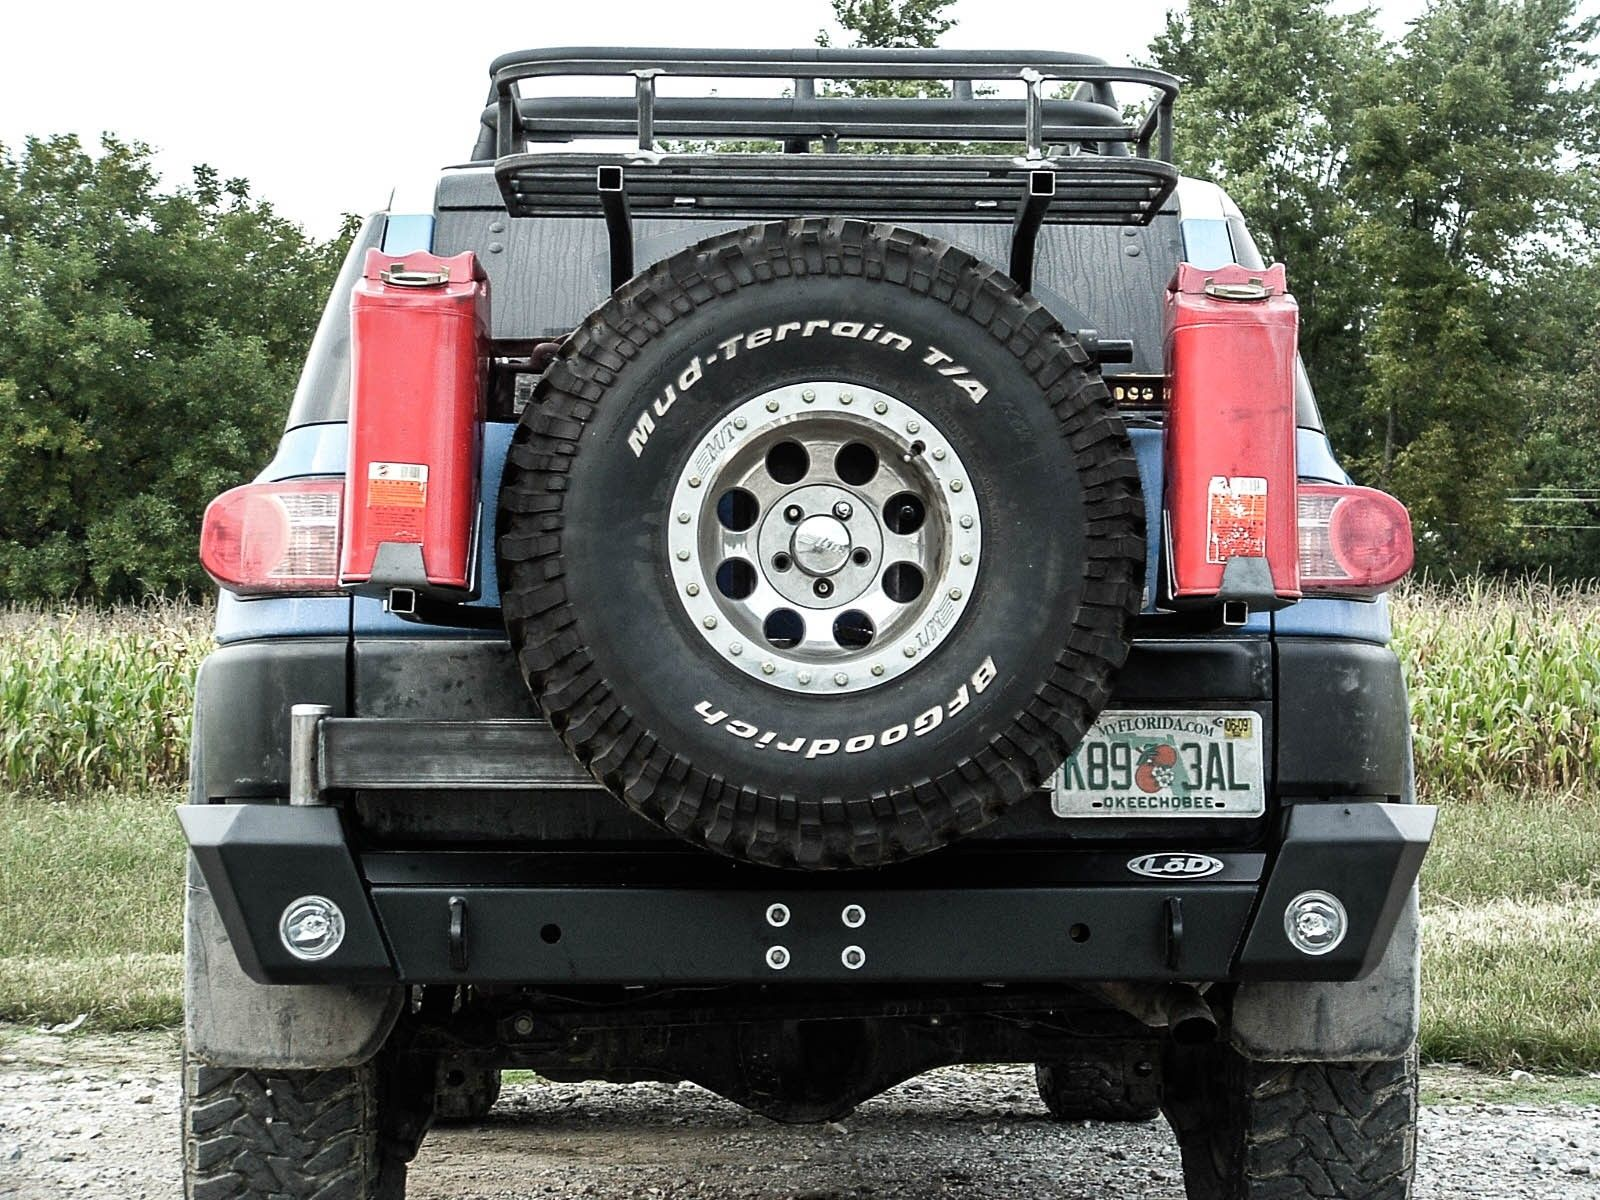 Toyota Fj Cruiser Tire Carrier Rear Bumpers Tire Carriers Fj Cruiser Toyota Products In 2020 Fj Cruiser Toyota Fj Cruiser Fj Cruiser Accessories